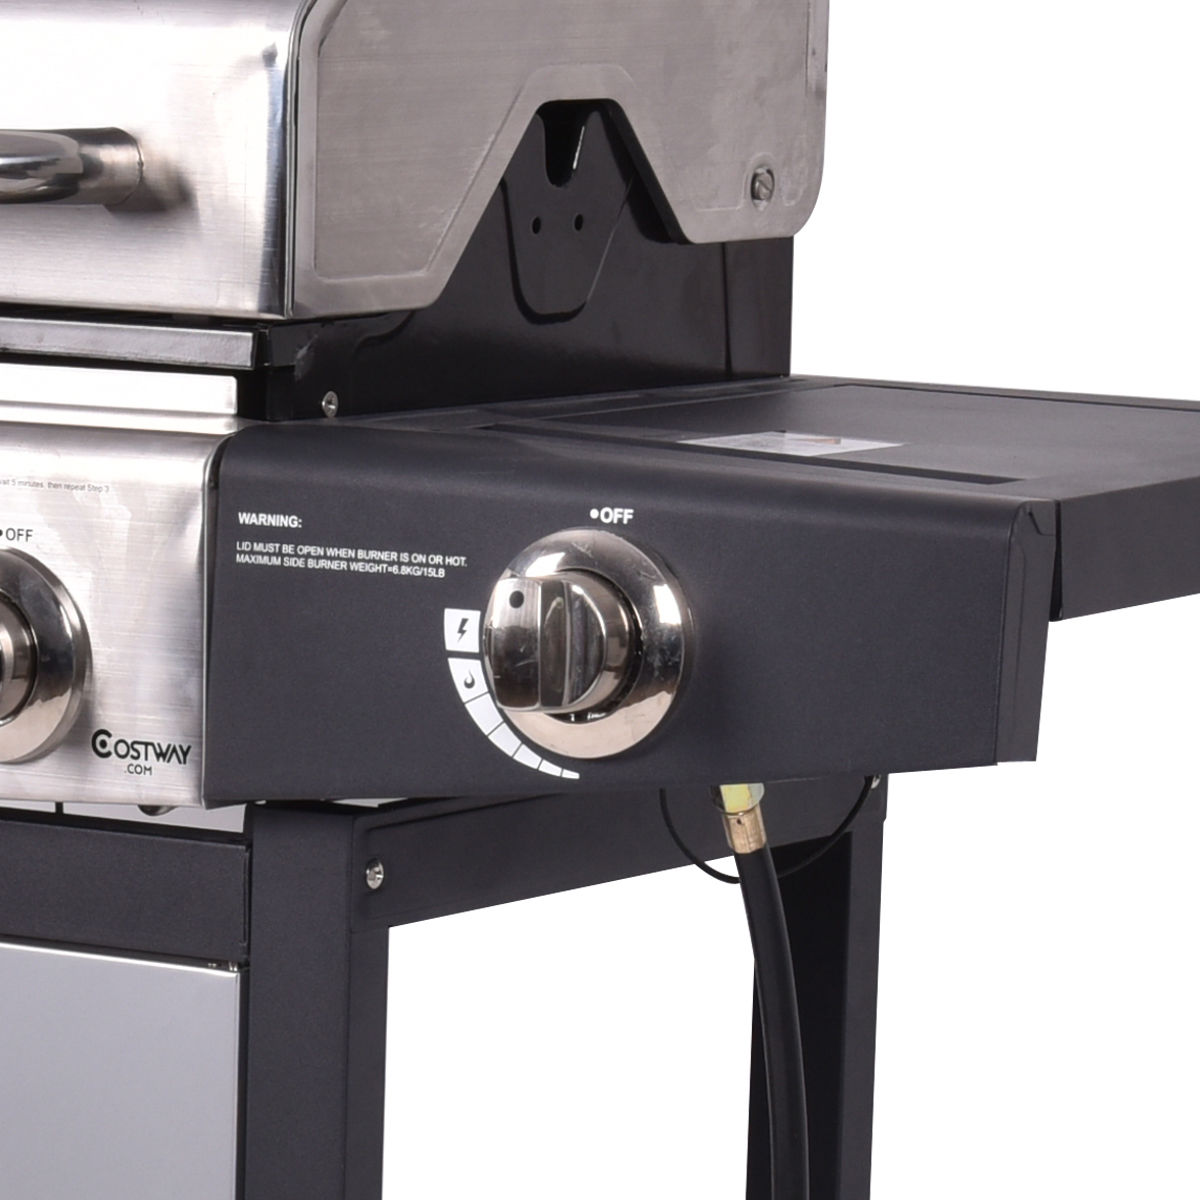 Costway 4 Burner Gas Porpane Grill Stainless Steel Outdoor Patio Cooking BBQ w/ Casters - image 6 of 9